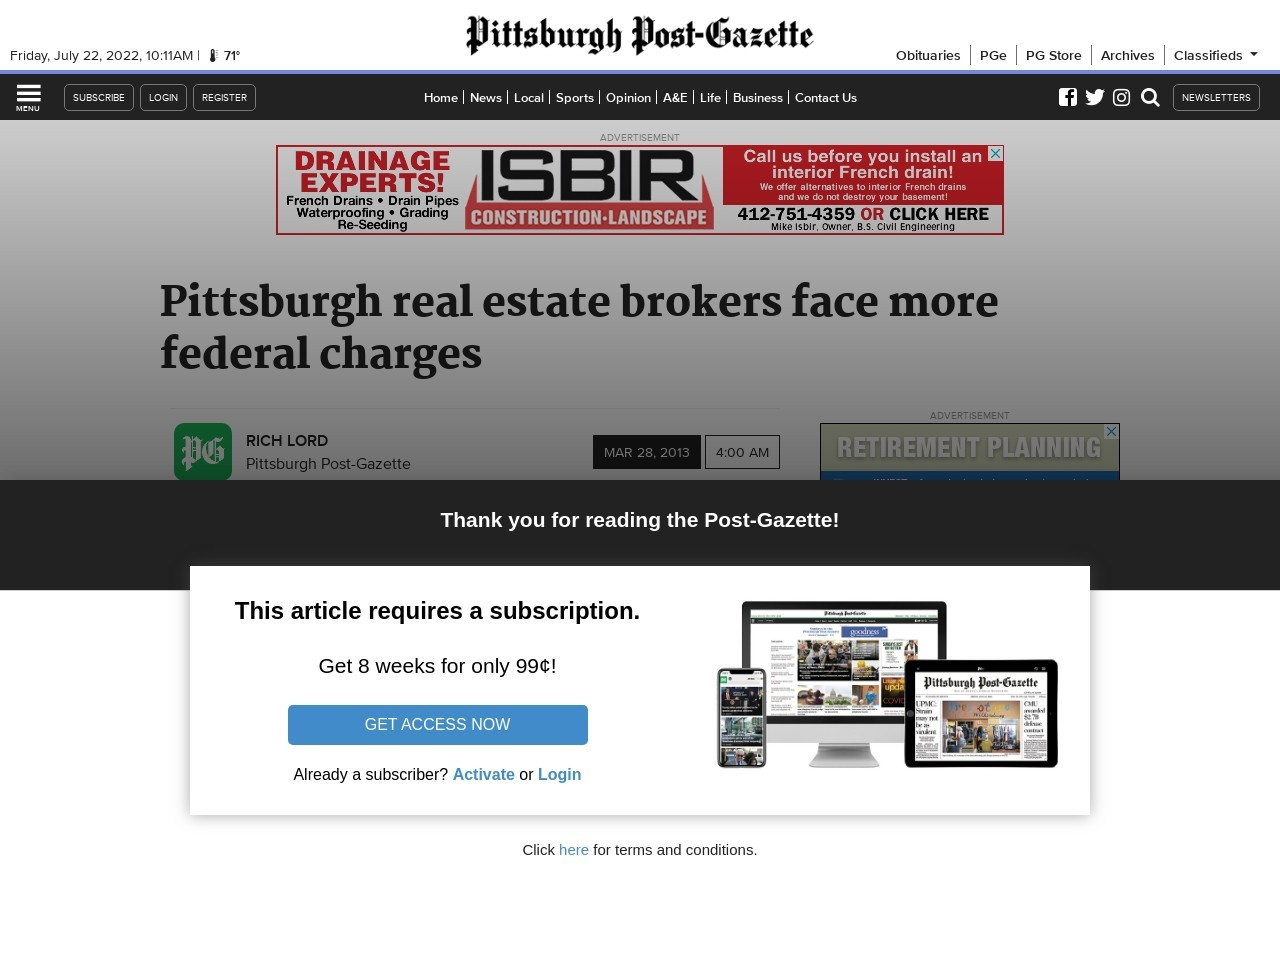 Pittsburgh real estate brokers face more federal charges